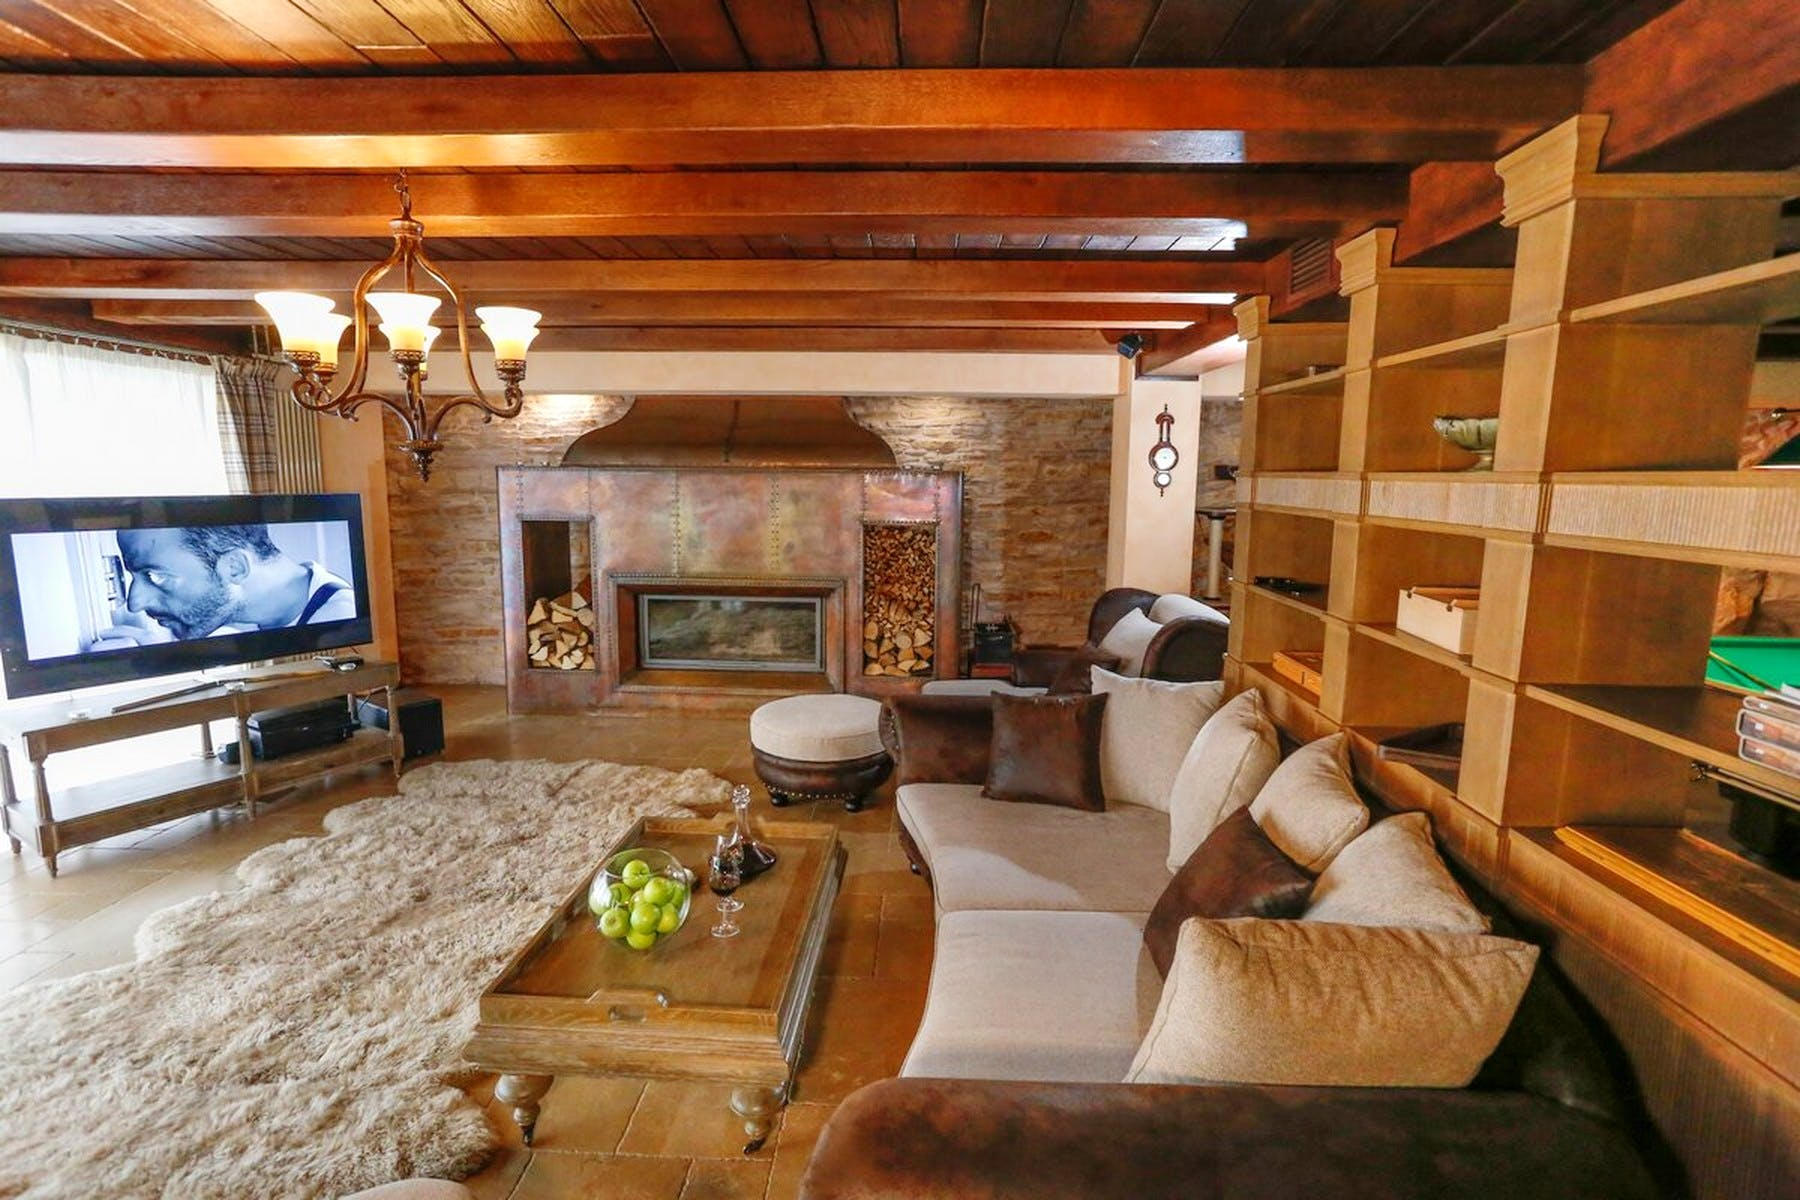 Attractive living room area in warm and neutral colors